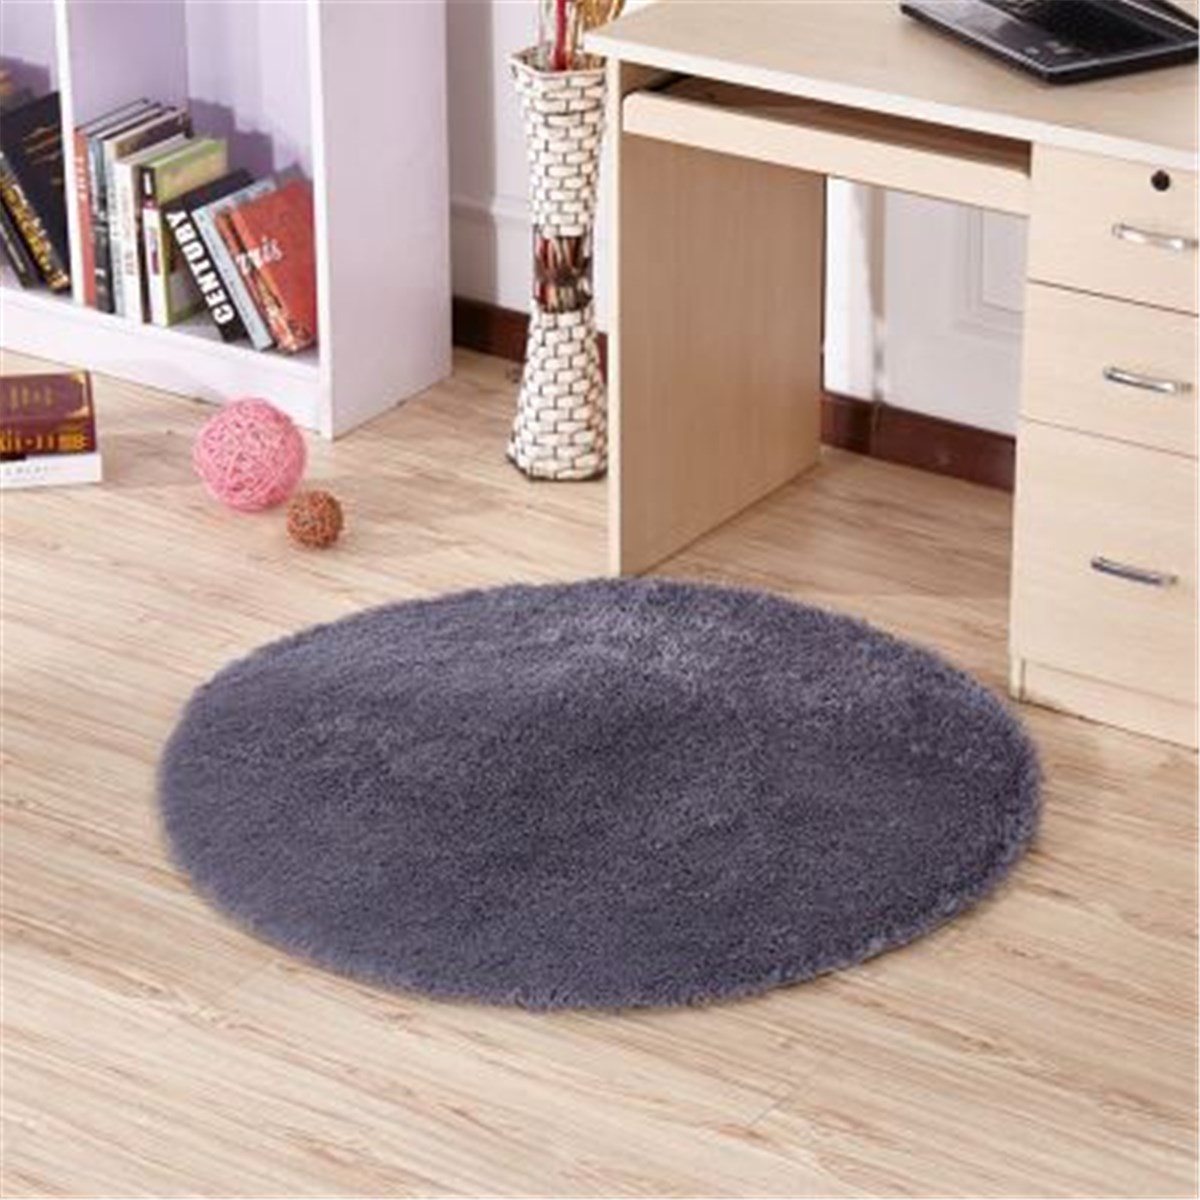 Compare Prices on Shaggy Round Rugs- Online Shopping/Buy Low Price ...